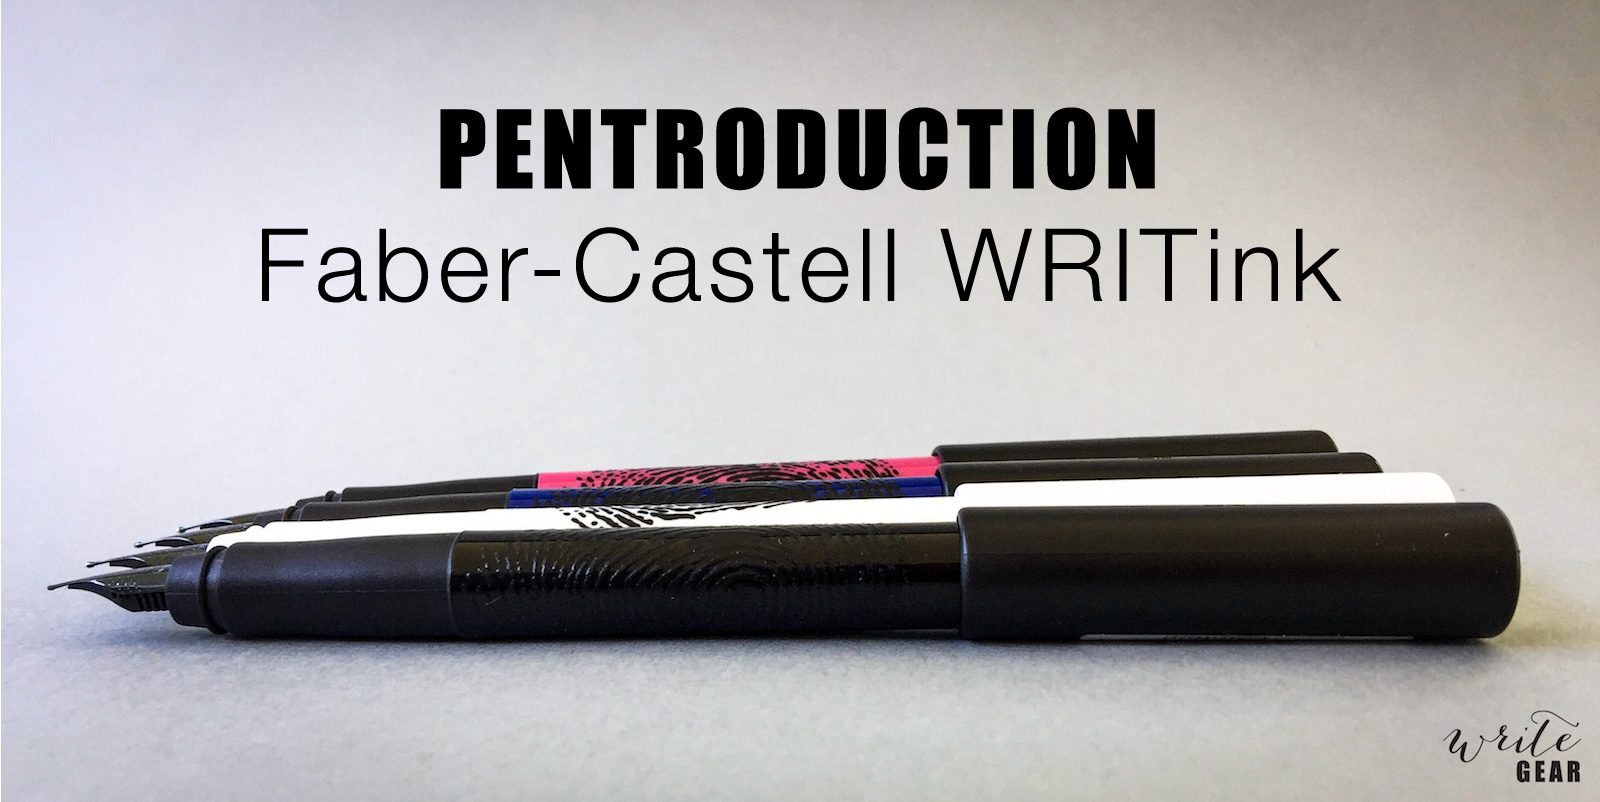 Faber-Castell WRITink